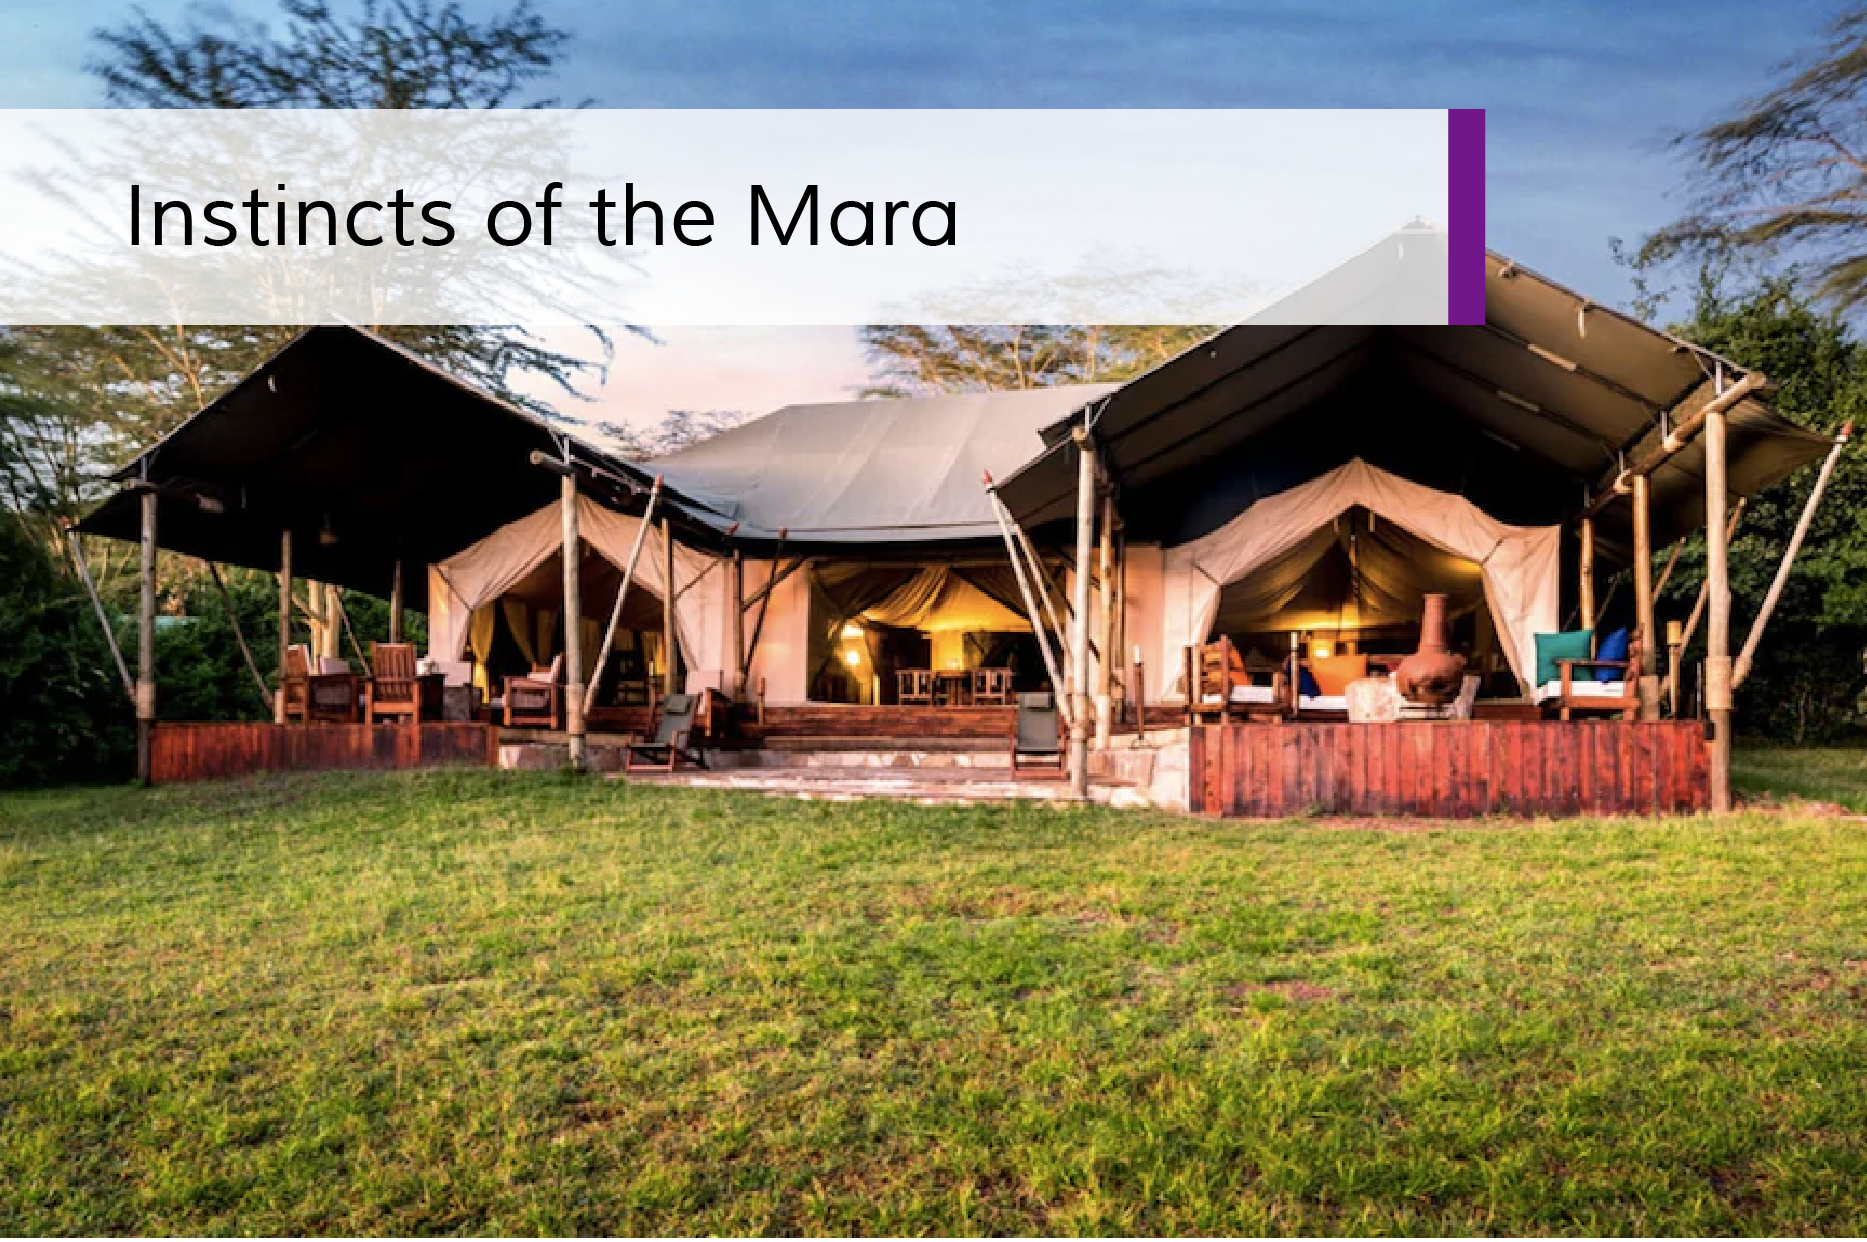 Instincts of the Mara